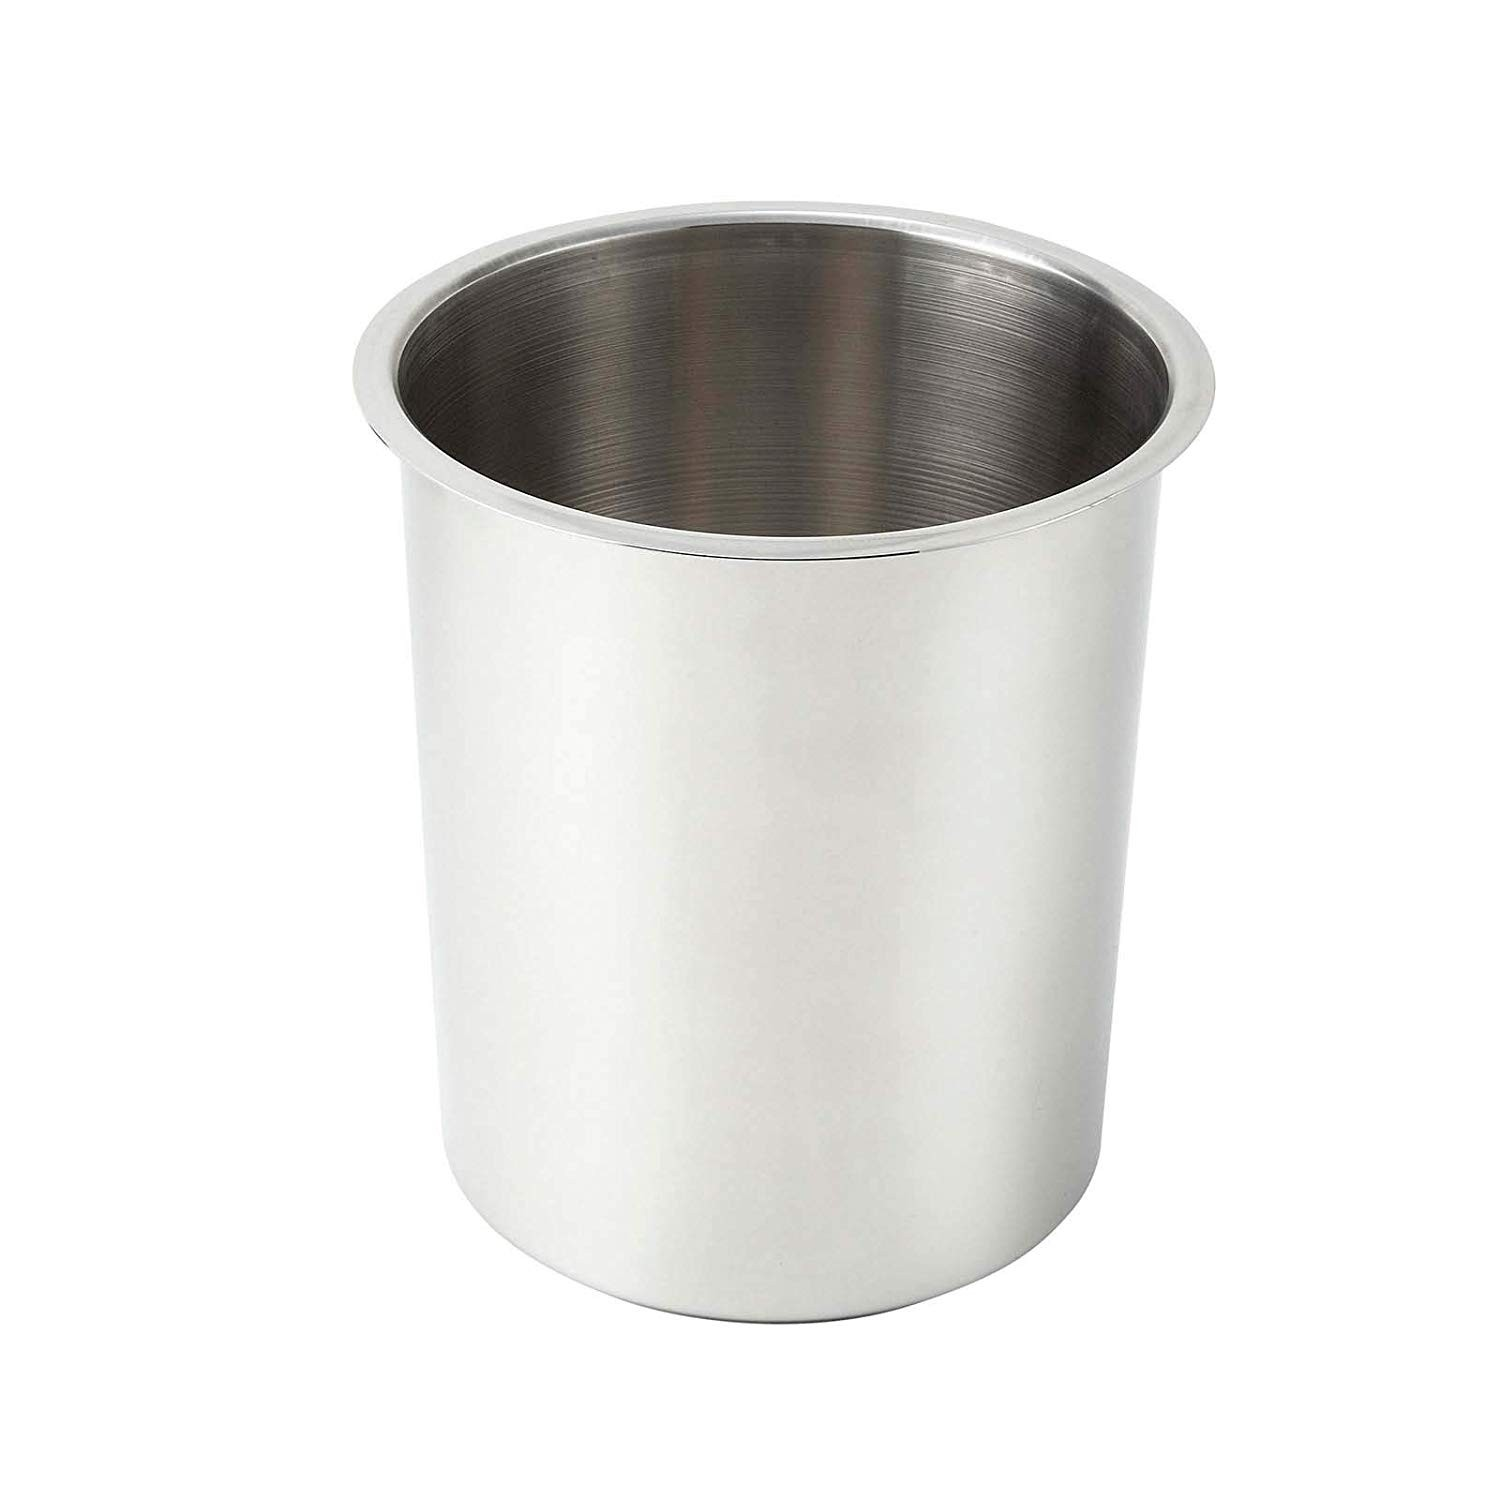 Winco BAMN-8.25 Stainless Steel Bain Marie Pot 8.25 Qt.